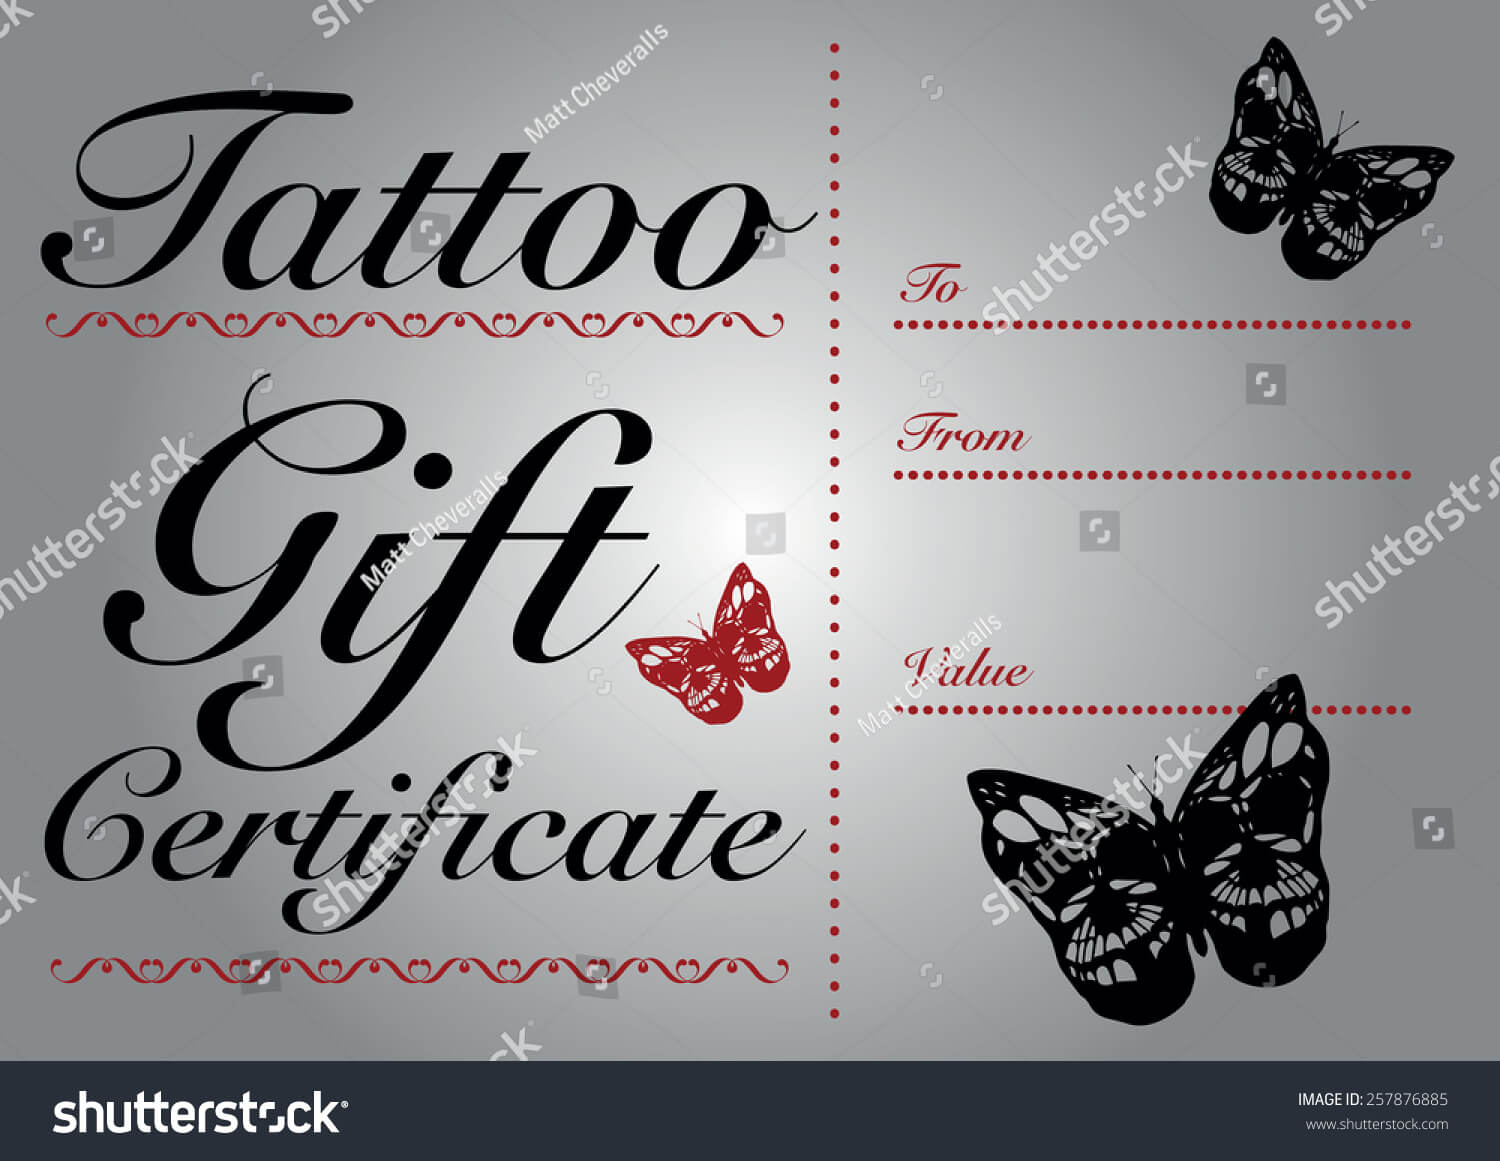 Tattoo Gift Certificate Template - Atlantaauctionco Throughout Tattoo Gift Certificate Template